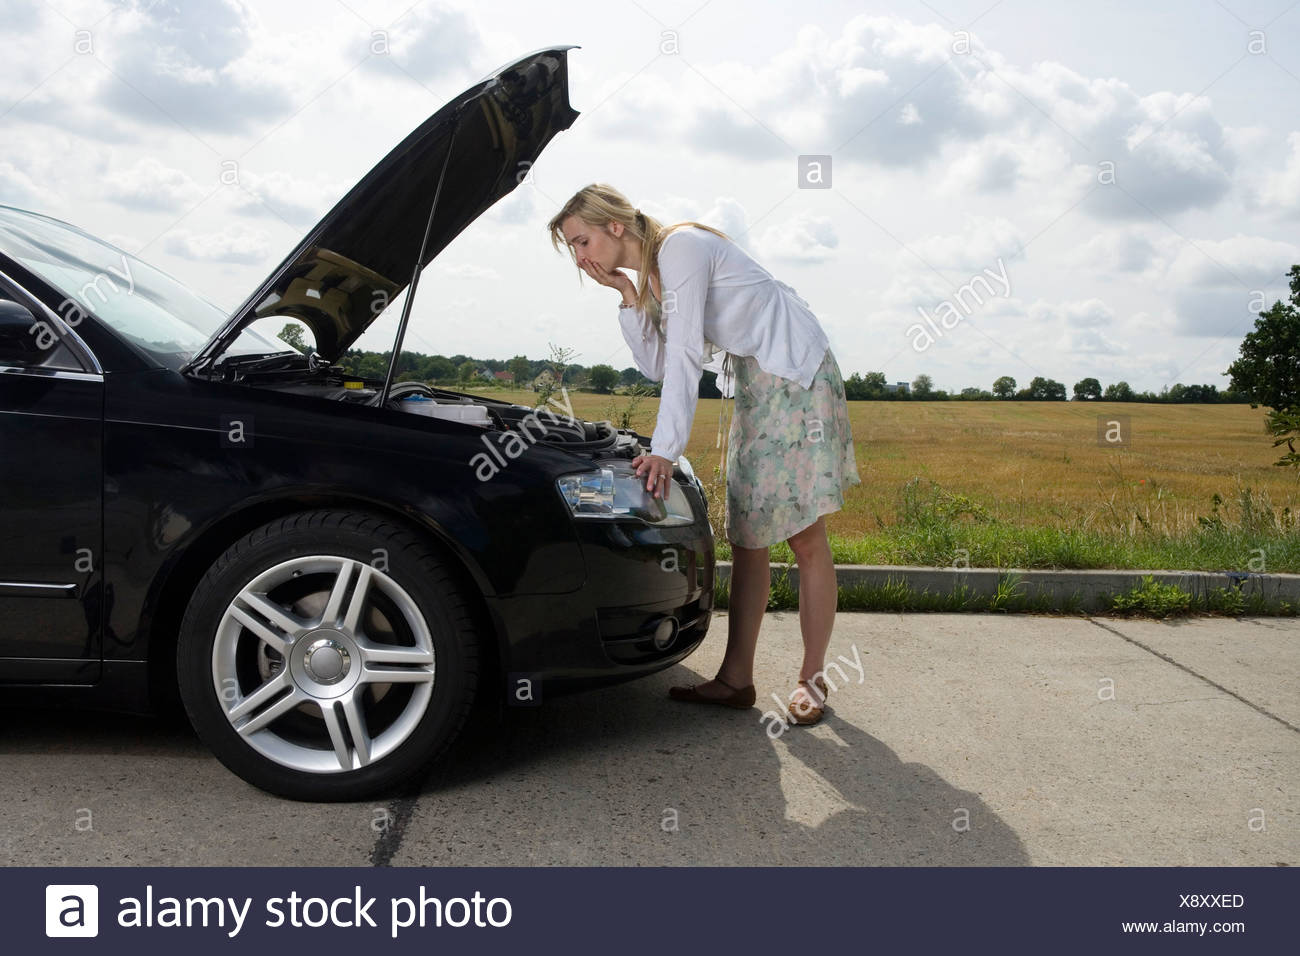 a-woman-leaning-over-an-open-bonnet-at-t